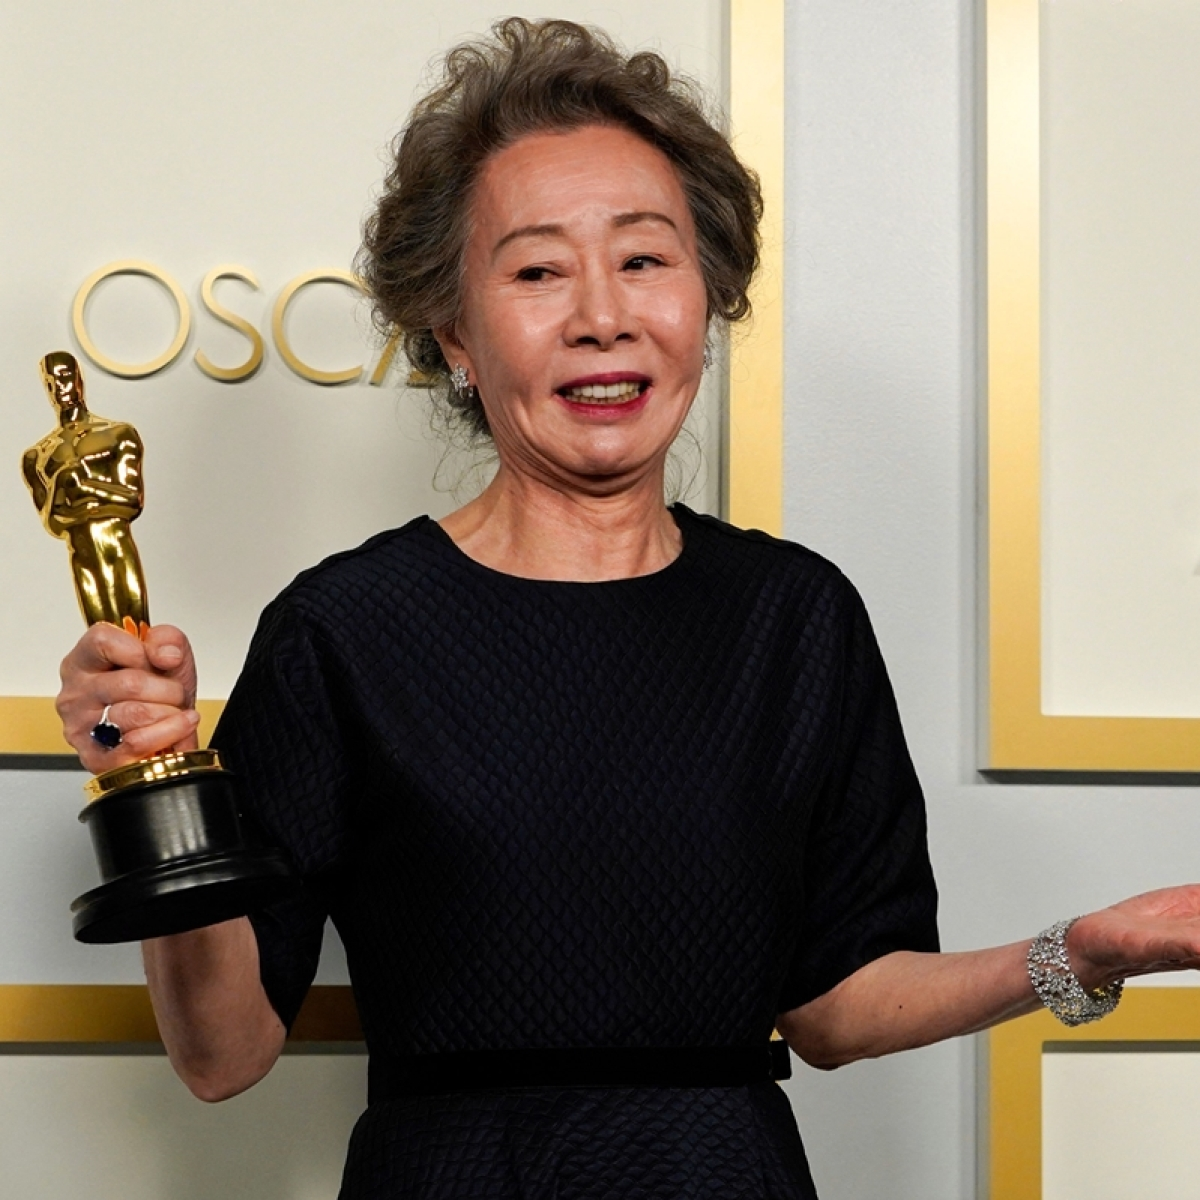 Oscars 2021: Yuh-Jung Youn becomes first South Korean star to win best-supporting actress for 'Minari'